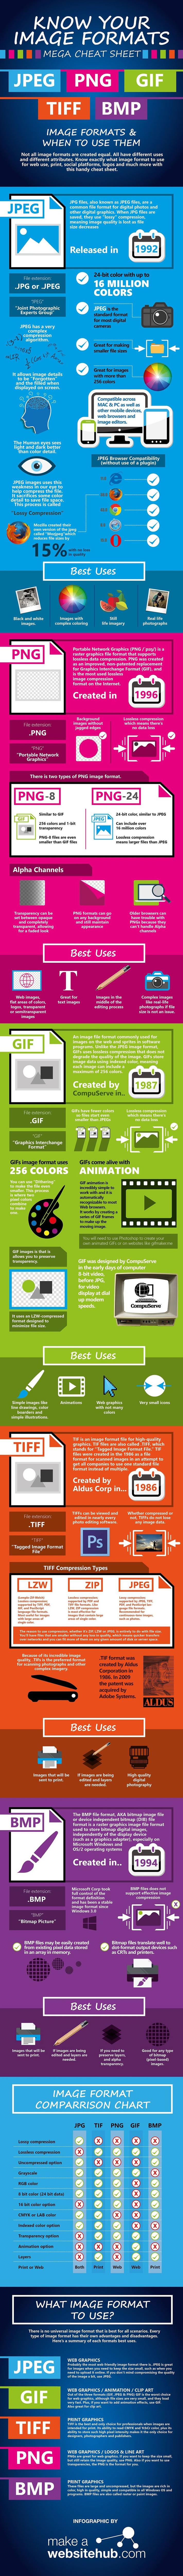 April 6, 2016 // 7:00 AM JPEG, PNG, or GIF? The Ultimate Cheat Sheet of Image File Formats [Infographic] Written by Jami Oetting | @jamioetting